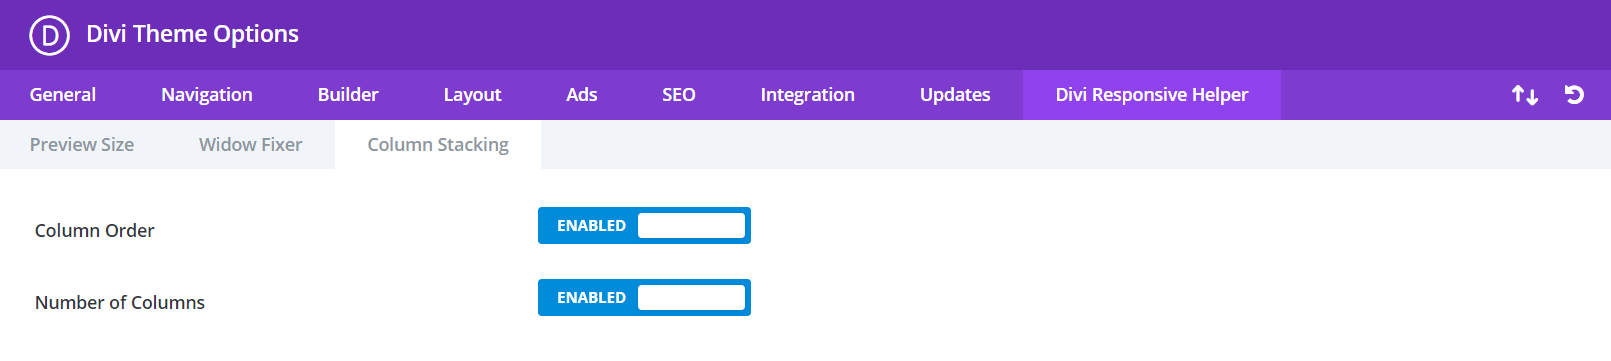 Divi Responsive Helper Column Stacking Settings and Features